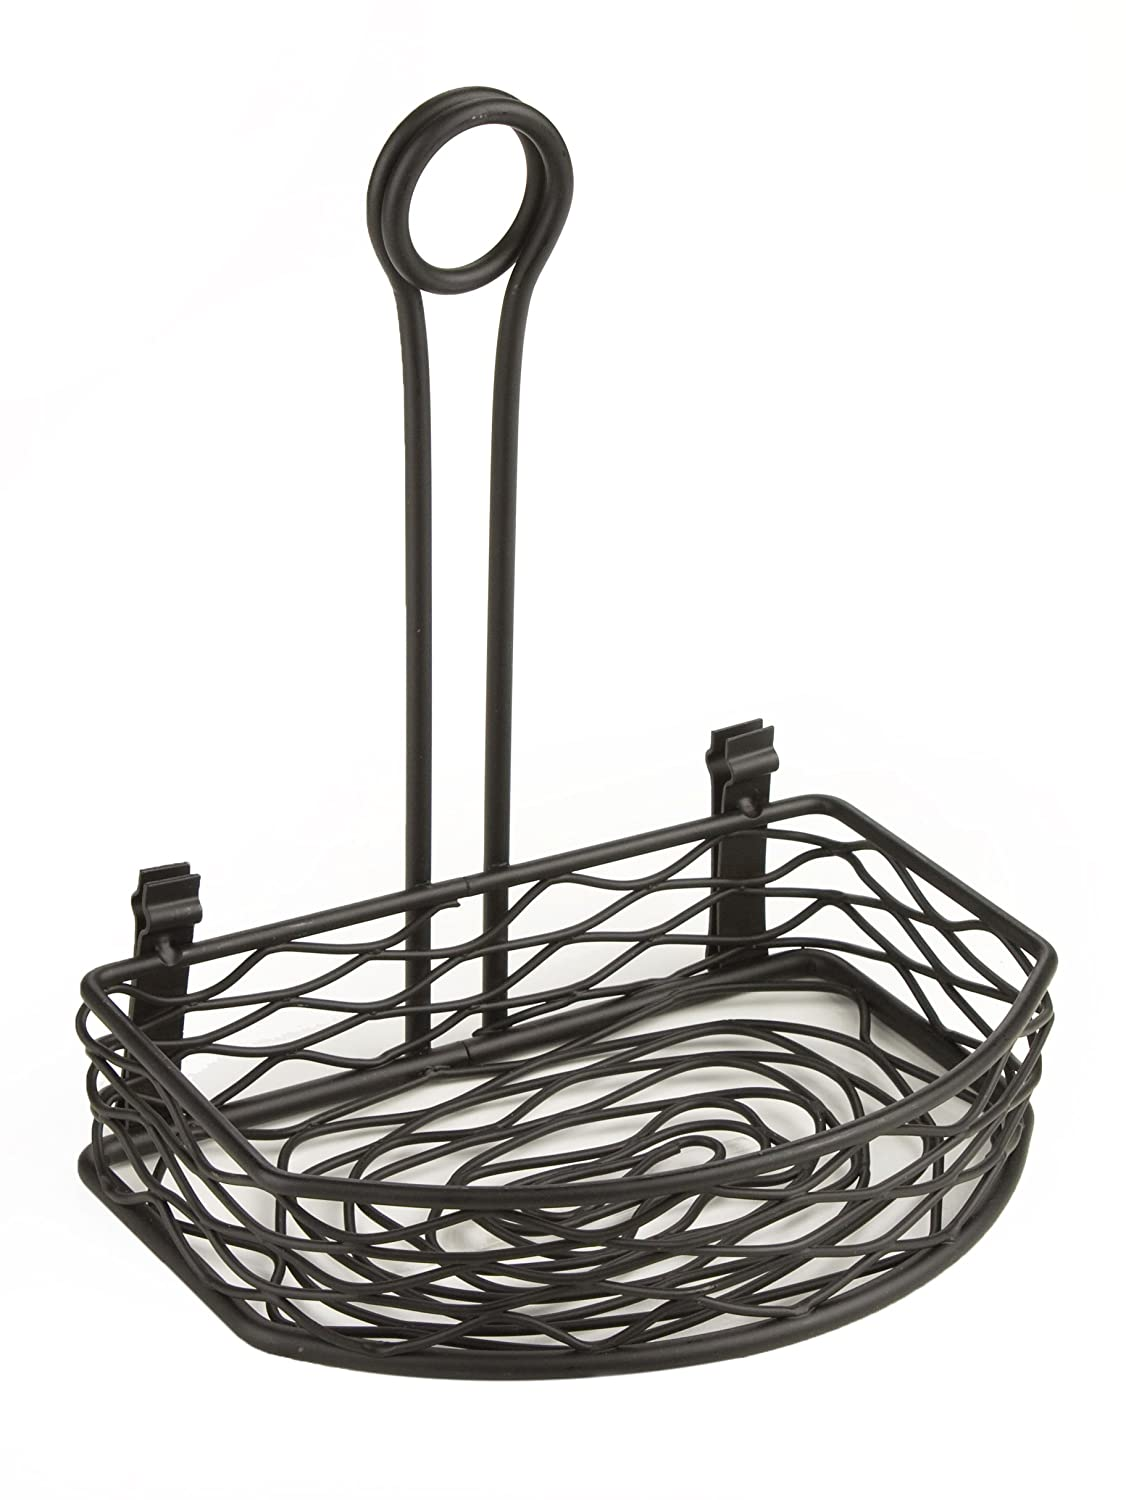 Displays2go Wrought Iron Flat Side Birds Nest Design Tabletop Condiment Stand with Menu Clip, Set of 10 CNDR8FBBK